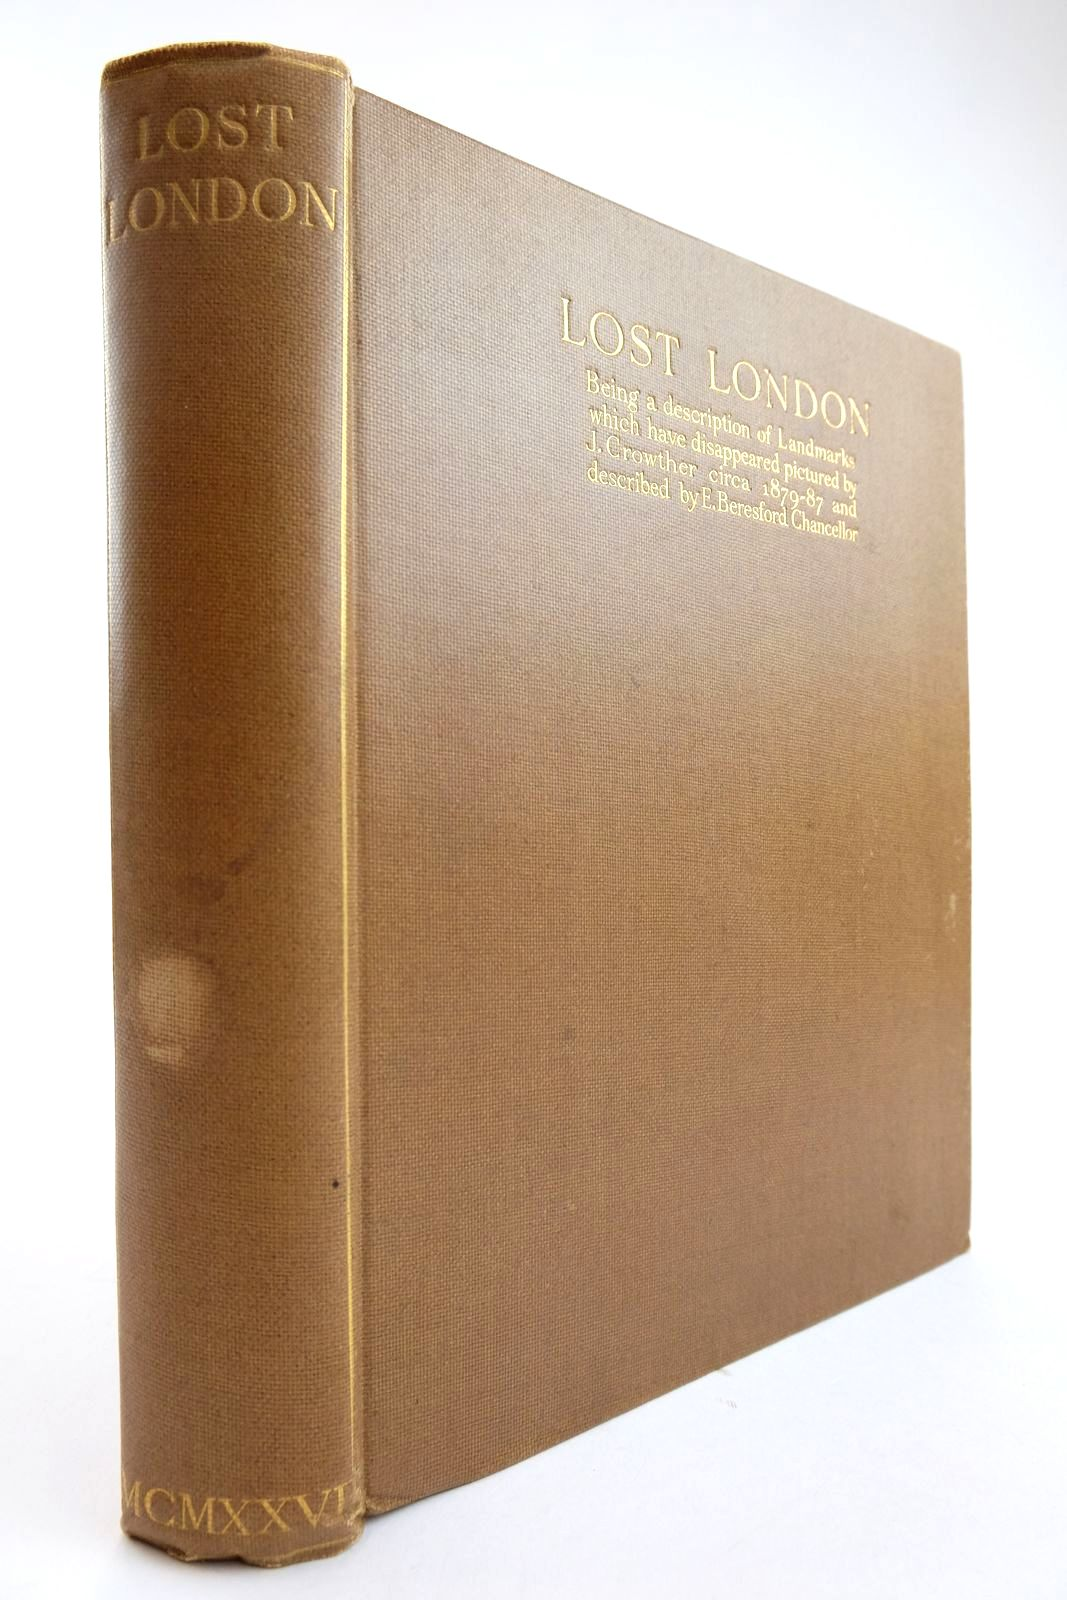 Photo of LOST LONDON written by Chancellor, E. Beresford illustrated by Crowther, J. published by Constable and Company Ltd. (STOCK CODE: 2134139)  for sale by Stella & Rose's Books